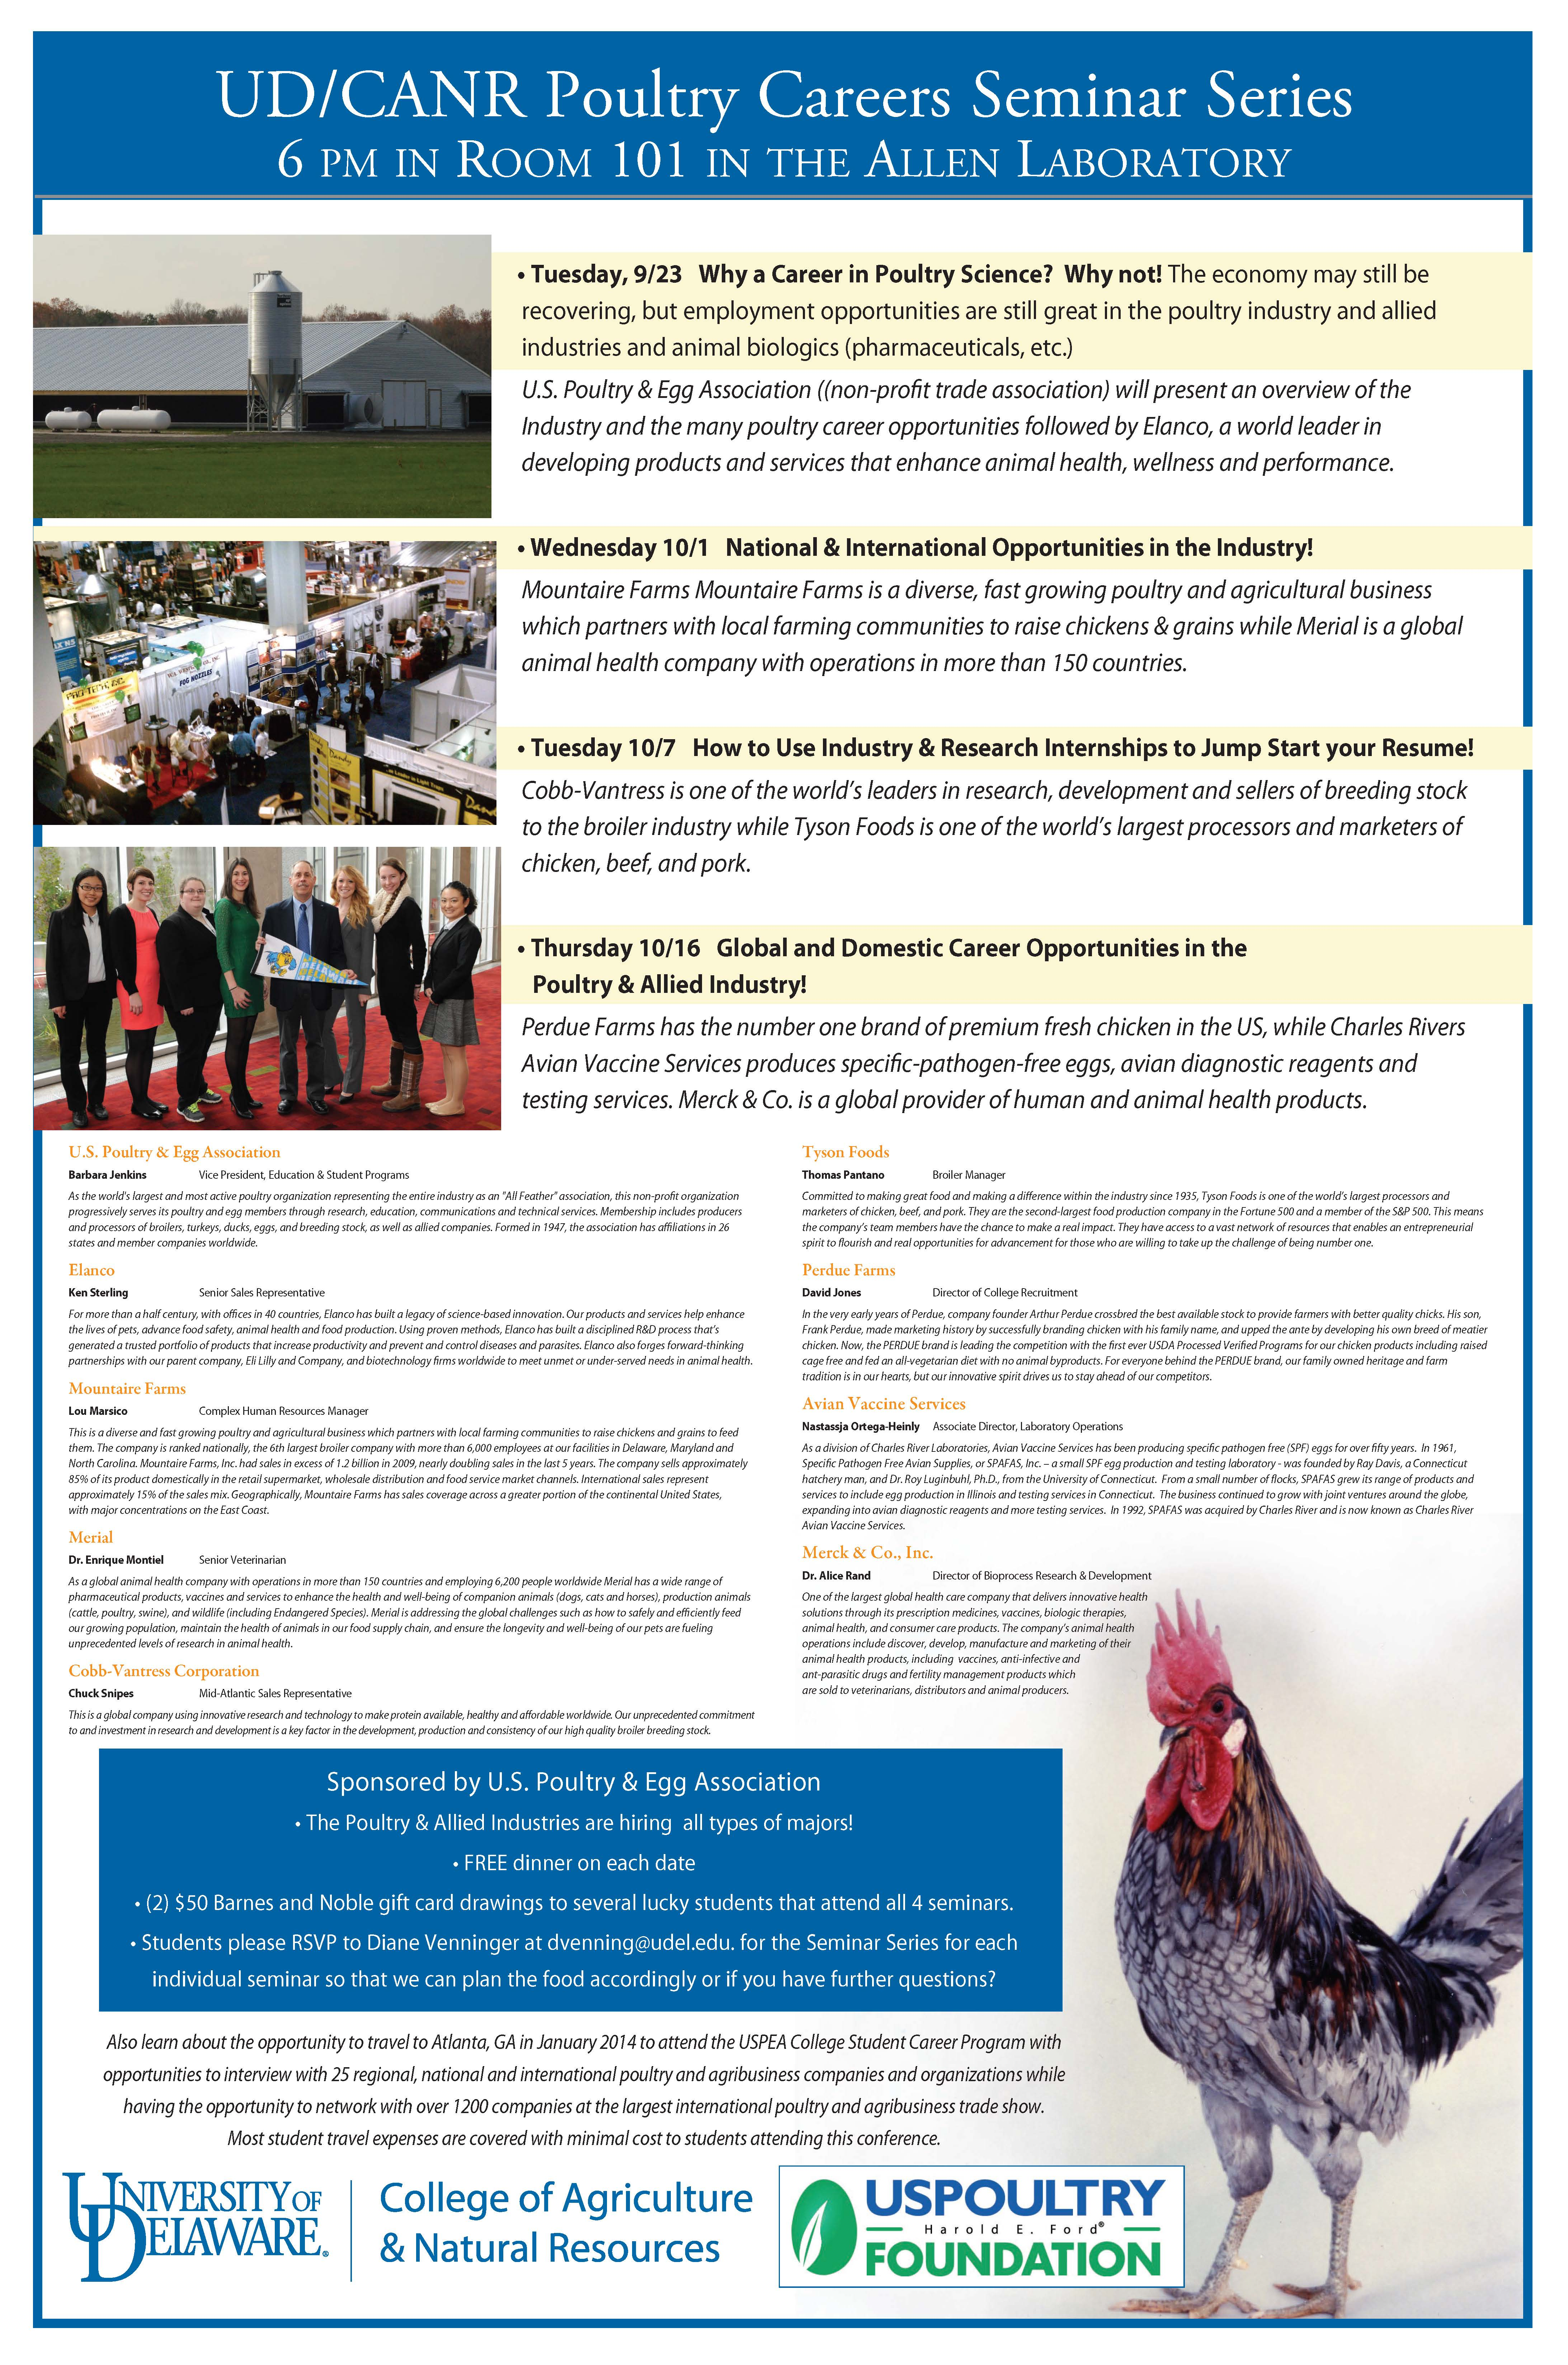 PoultrySeriesPoster1F 8-29-14